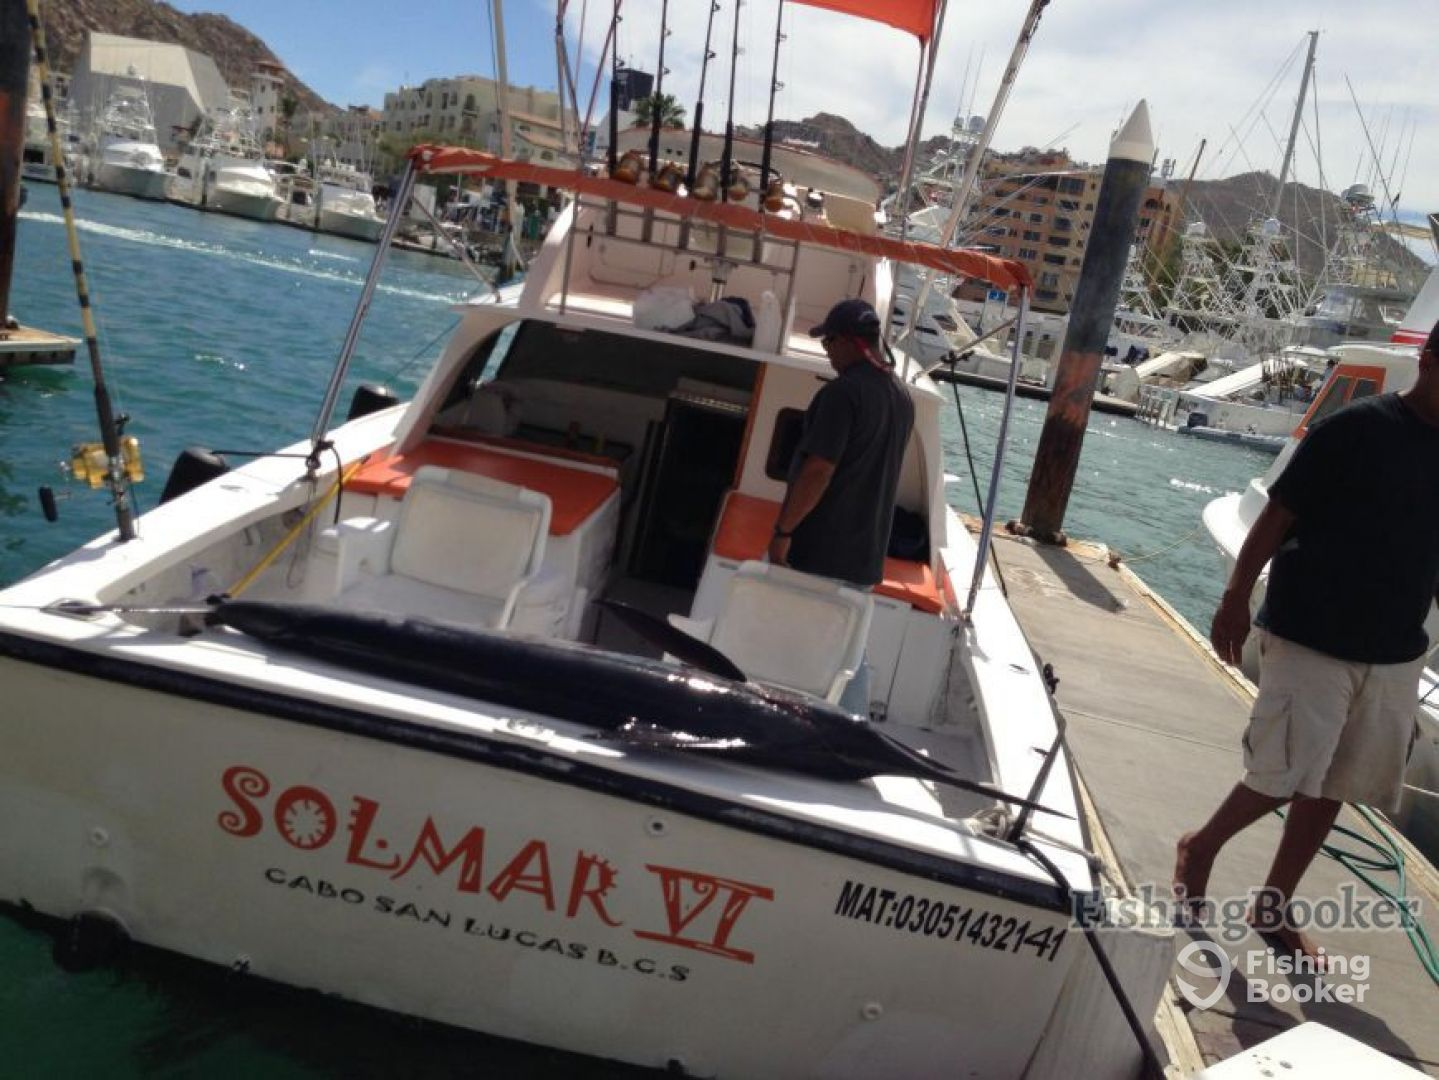 Solmar vi sportfishing 31 ft boat cabo san lucas mexico for Cabo san lucas fishing charters